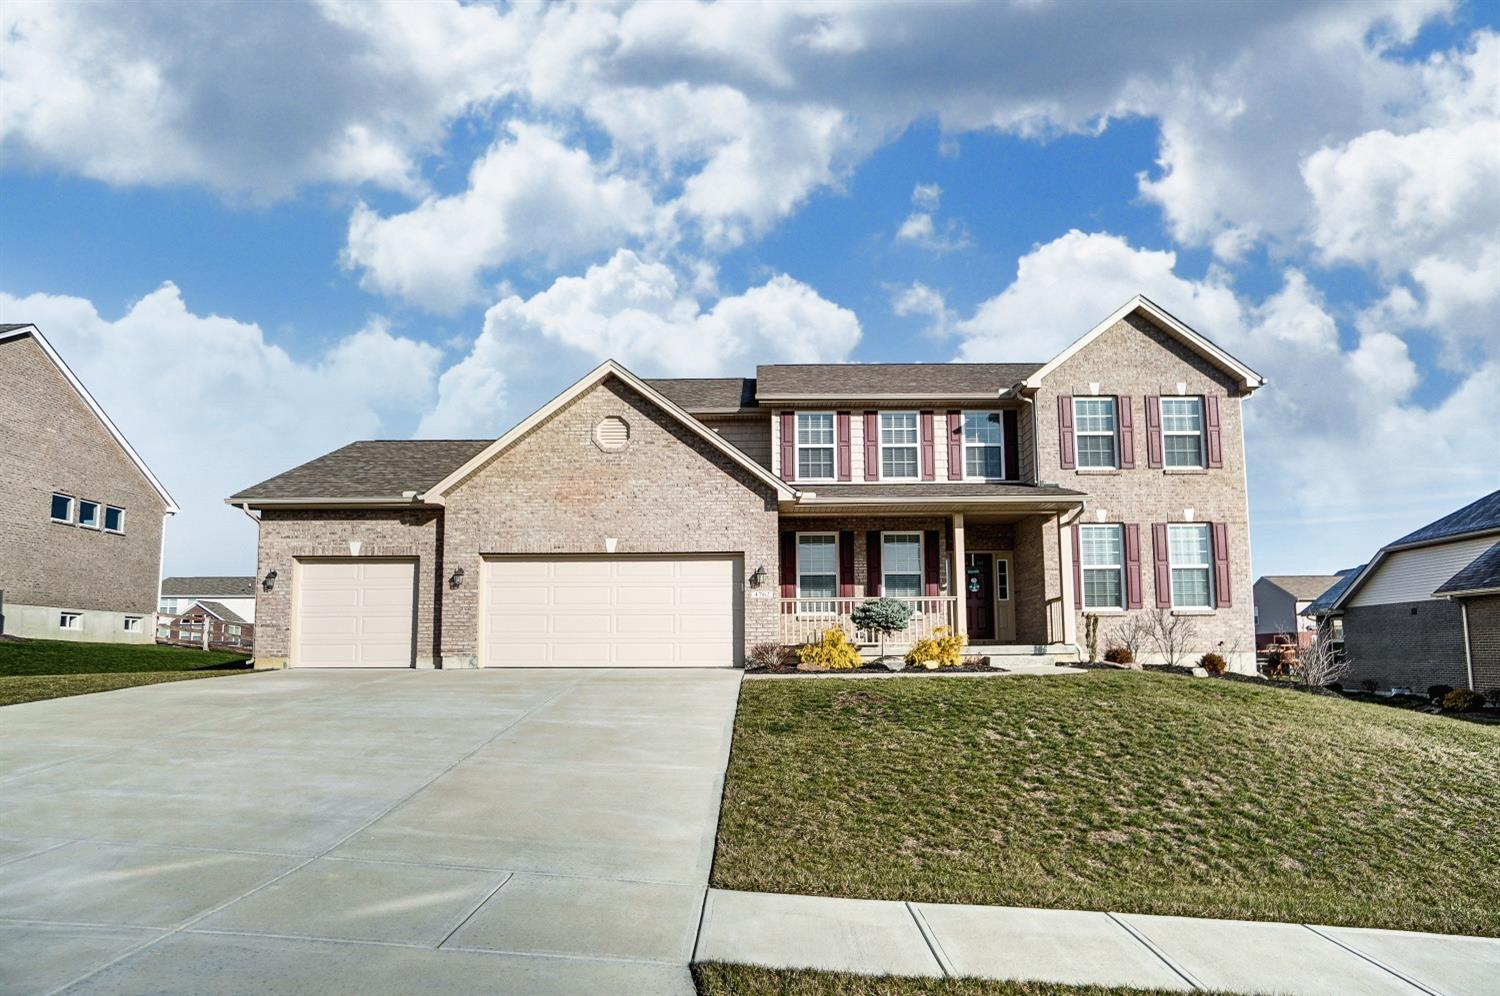 Property for sale at 4762 Osprey Pointe Drive, Liberty Twp,  Ohio 45011